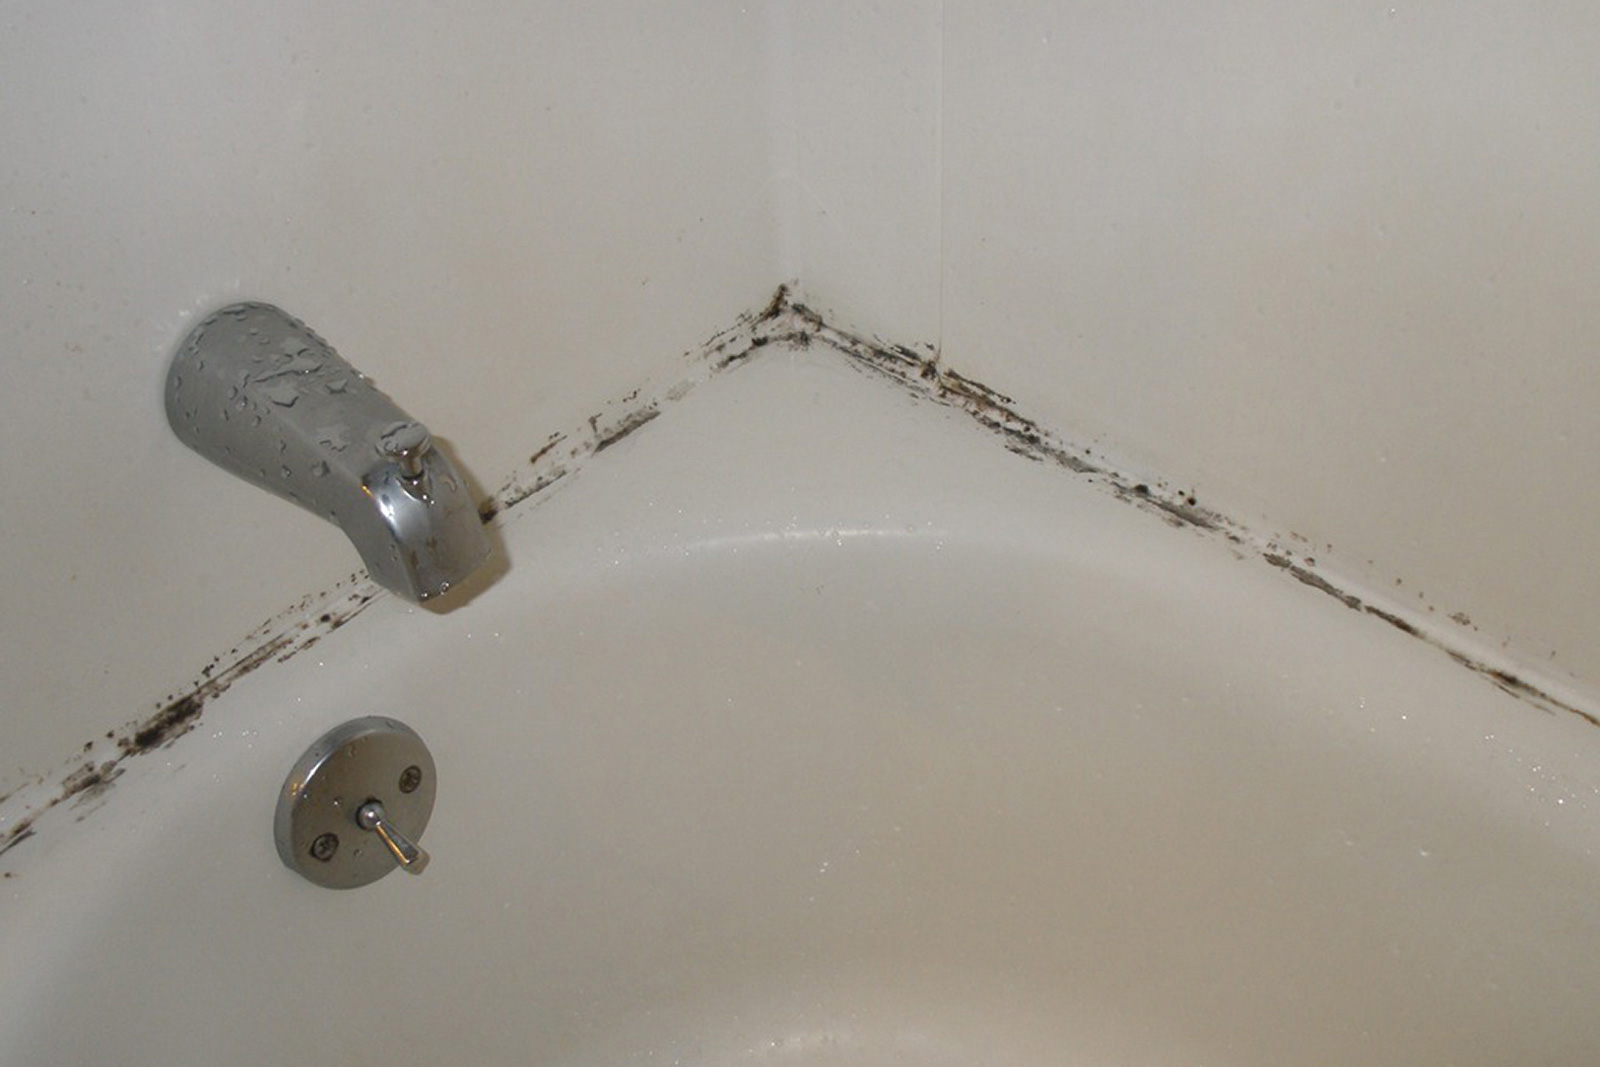 Bathroom Mold How To Kill Bathroom Mold Mold On Bathroom Ceiling - Black mold in bathroom wall